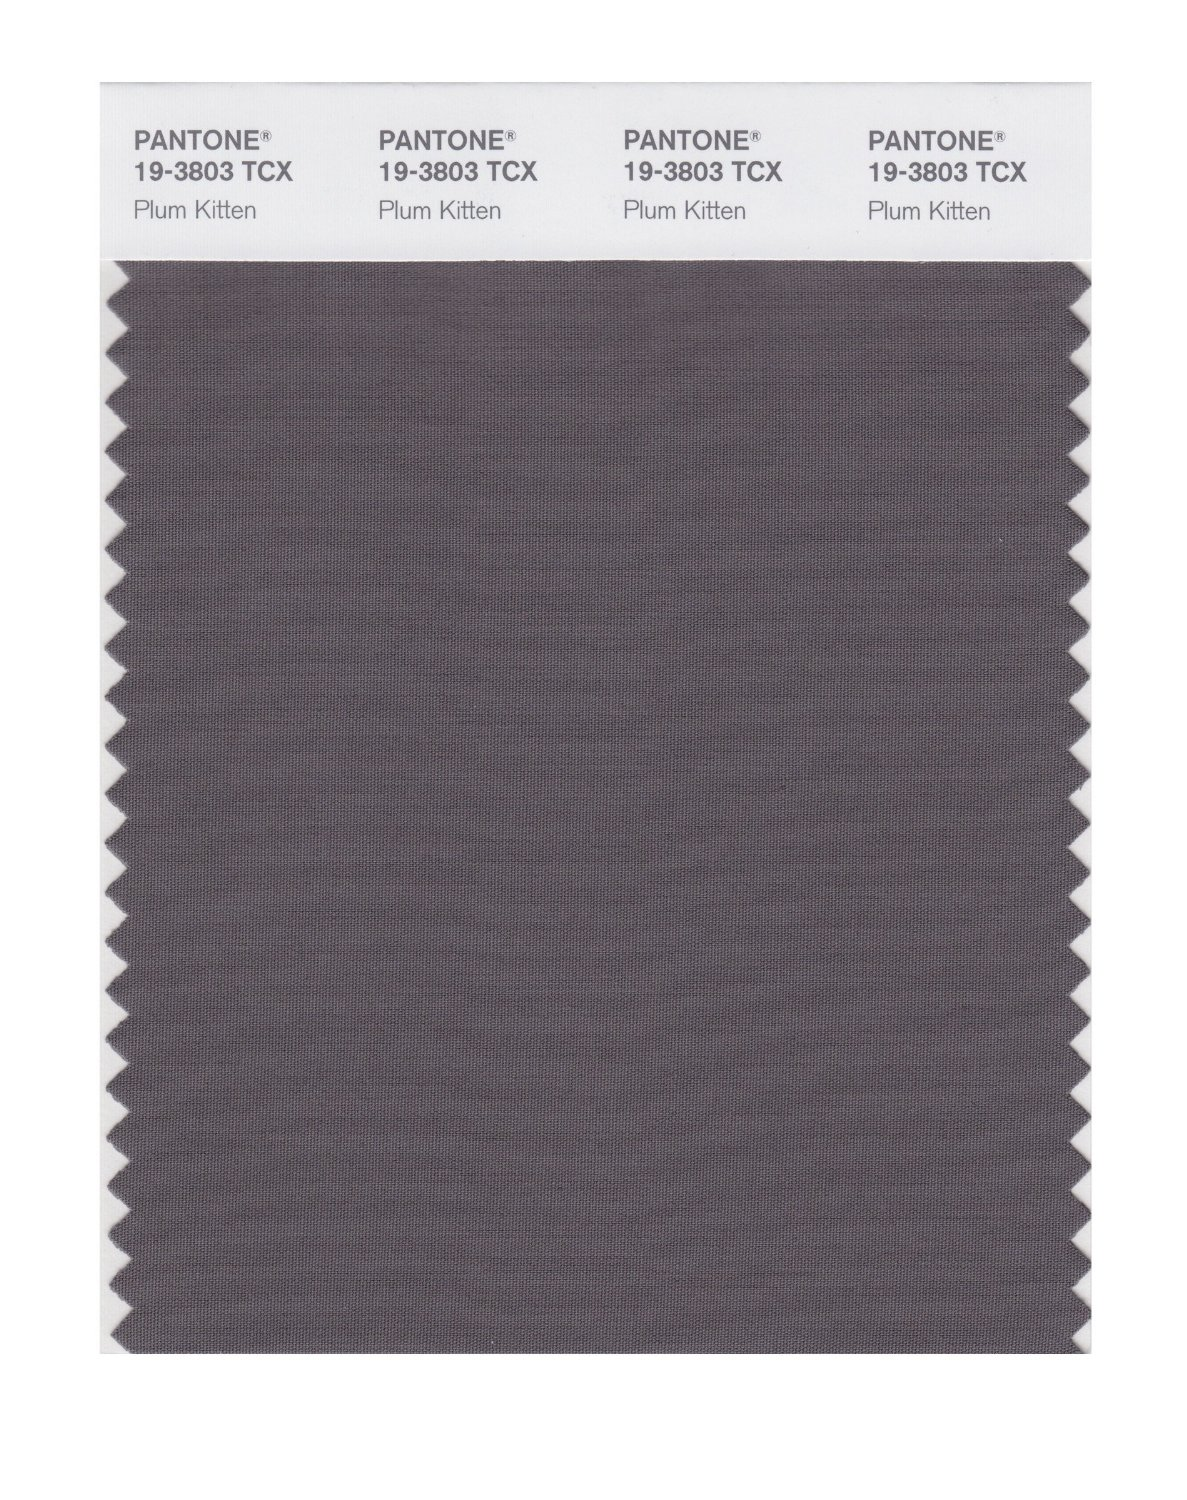 Pantone Smart Swatch 19-3803 Plum Kitten